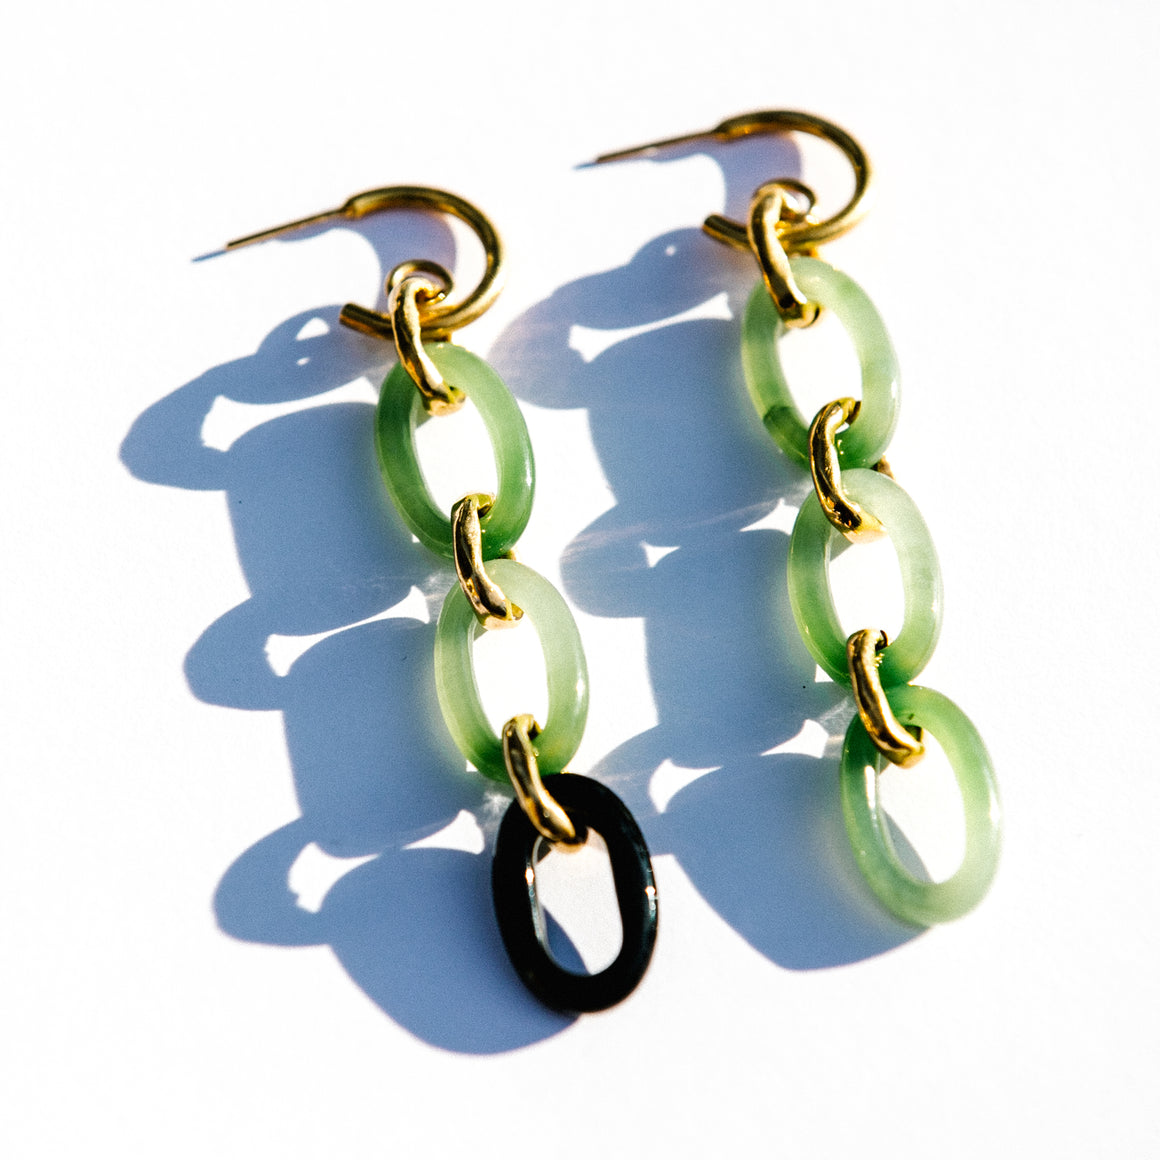 ASYMMETRICAL JADE CHAIN EARRINGS